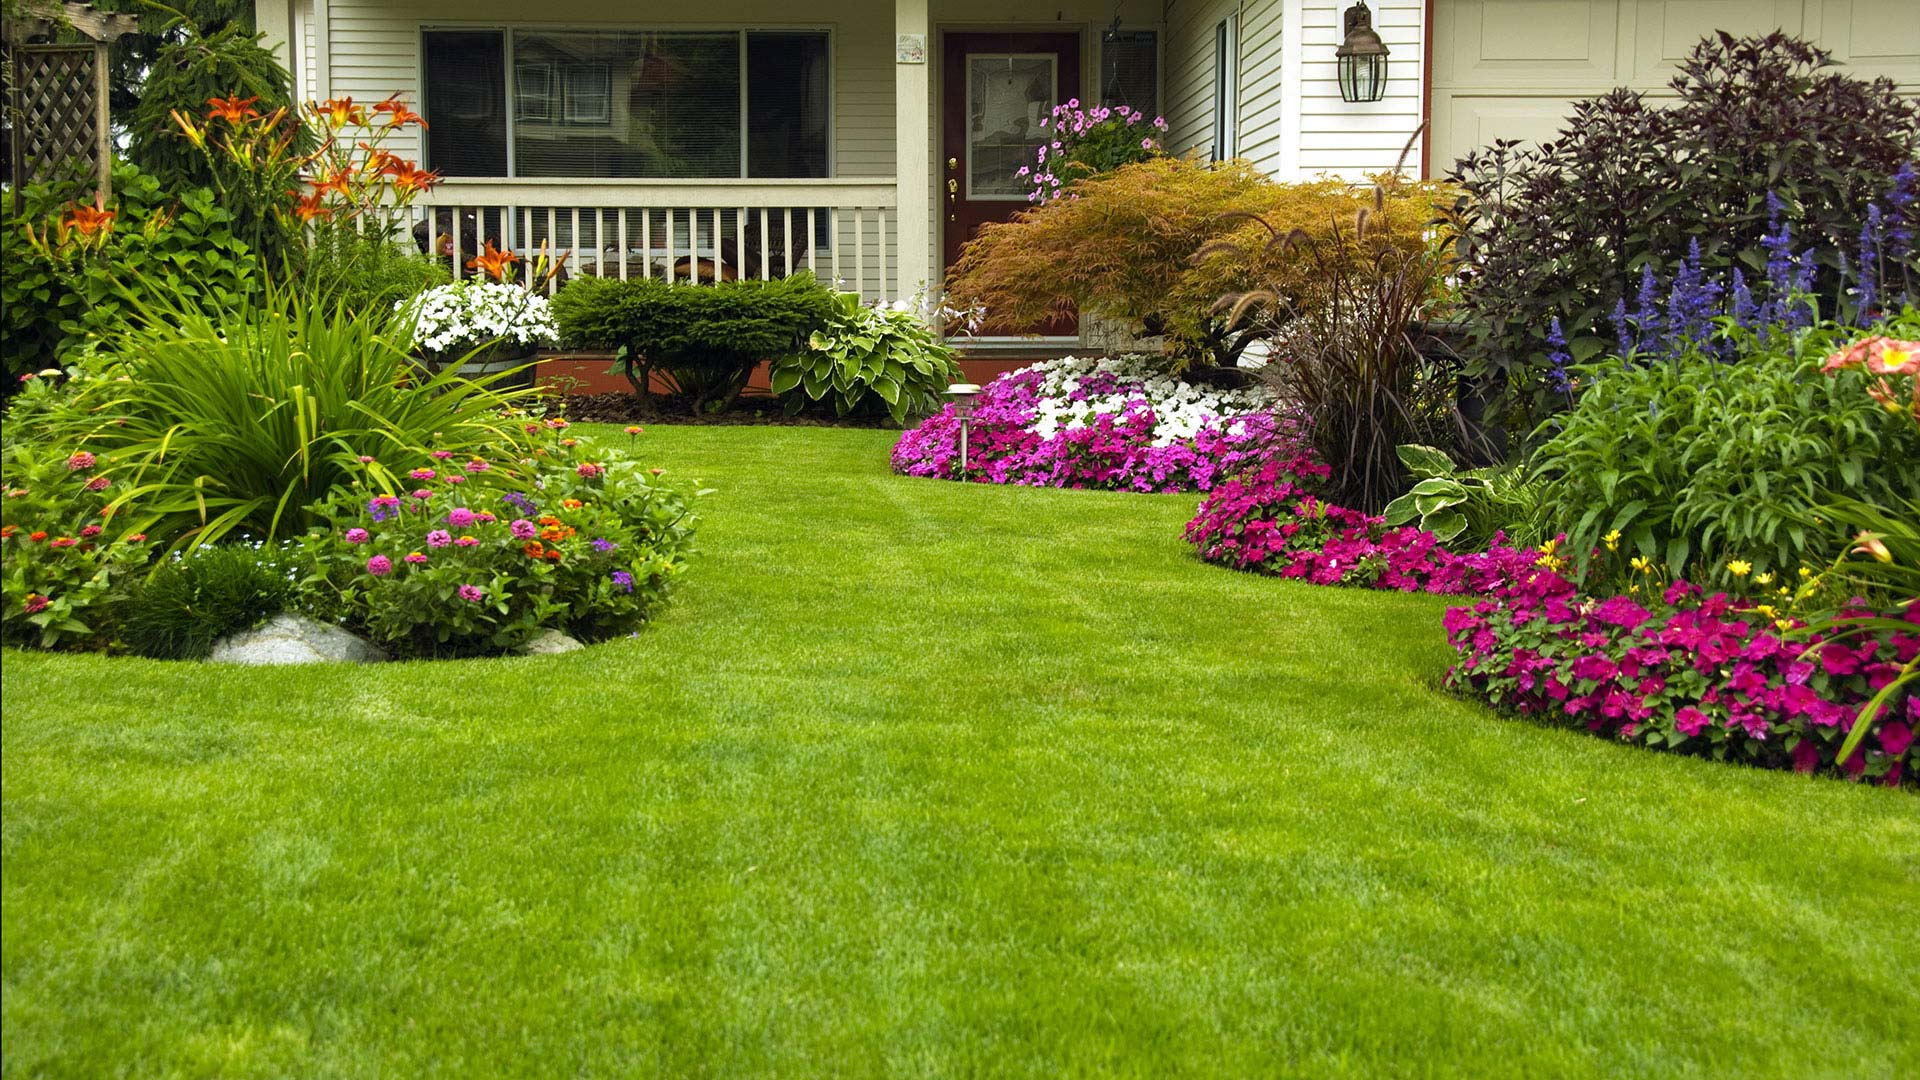 Kingsbury Landscape & Design LLC Landscaping Company, Lawn Service and Landscape Design slide 2